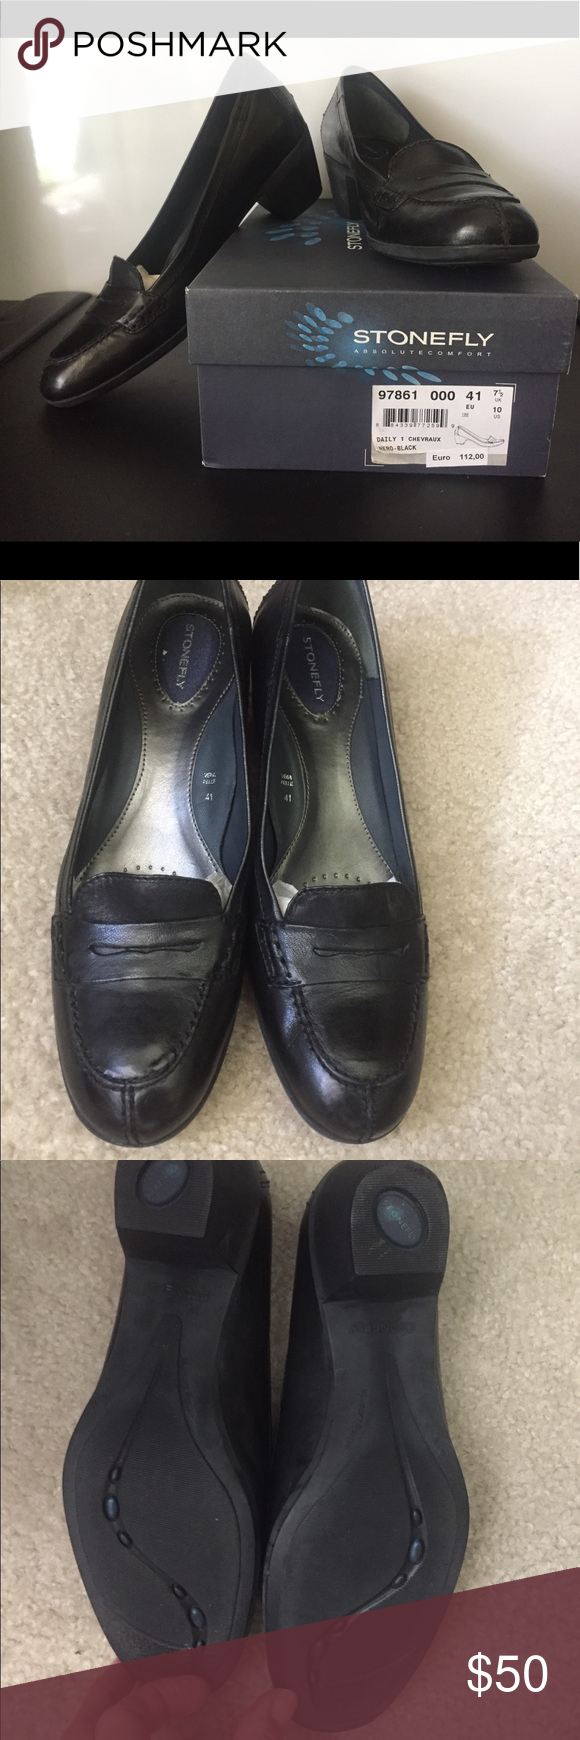 """cf6888fea4 Stonefly Shoes Black Size 10 EUC Stonefly Black leather shoes purchased in  Italy. 2"""" heel. stonefly Shoes Heels"""